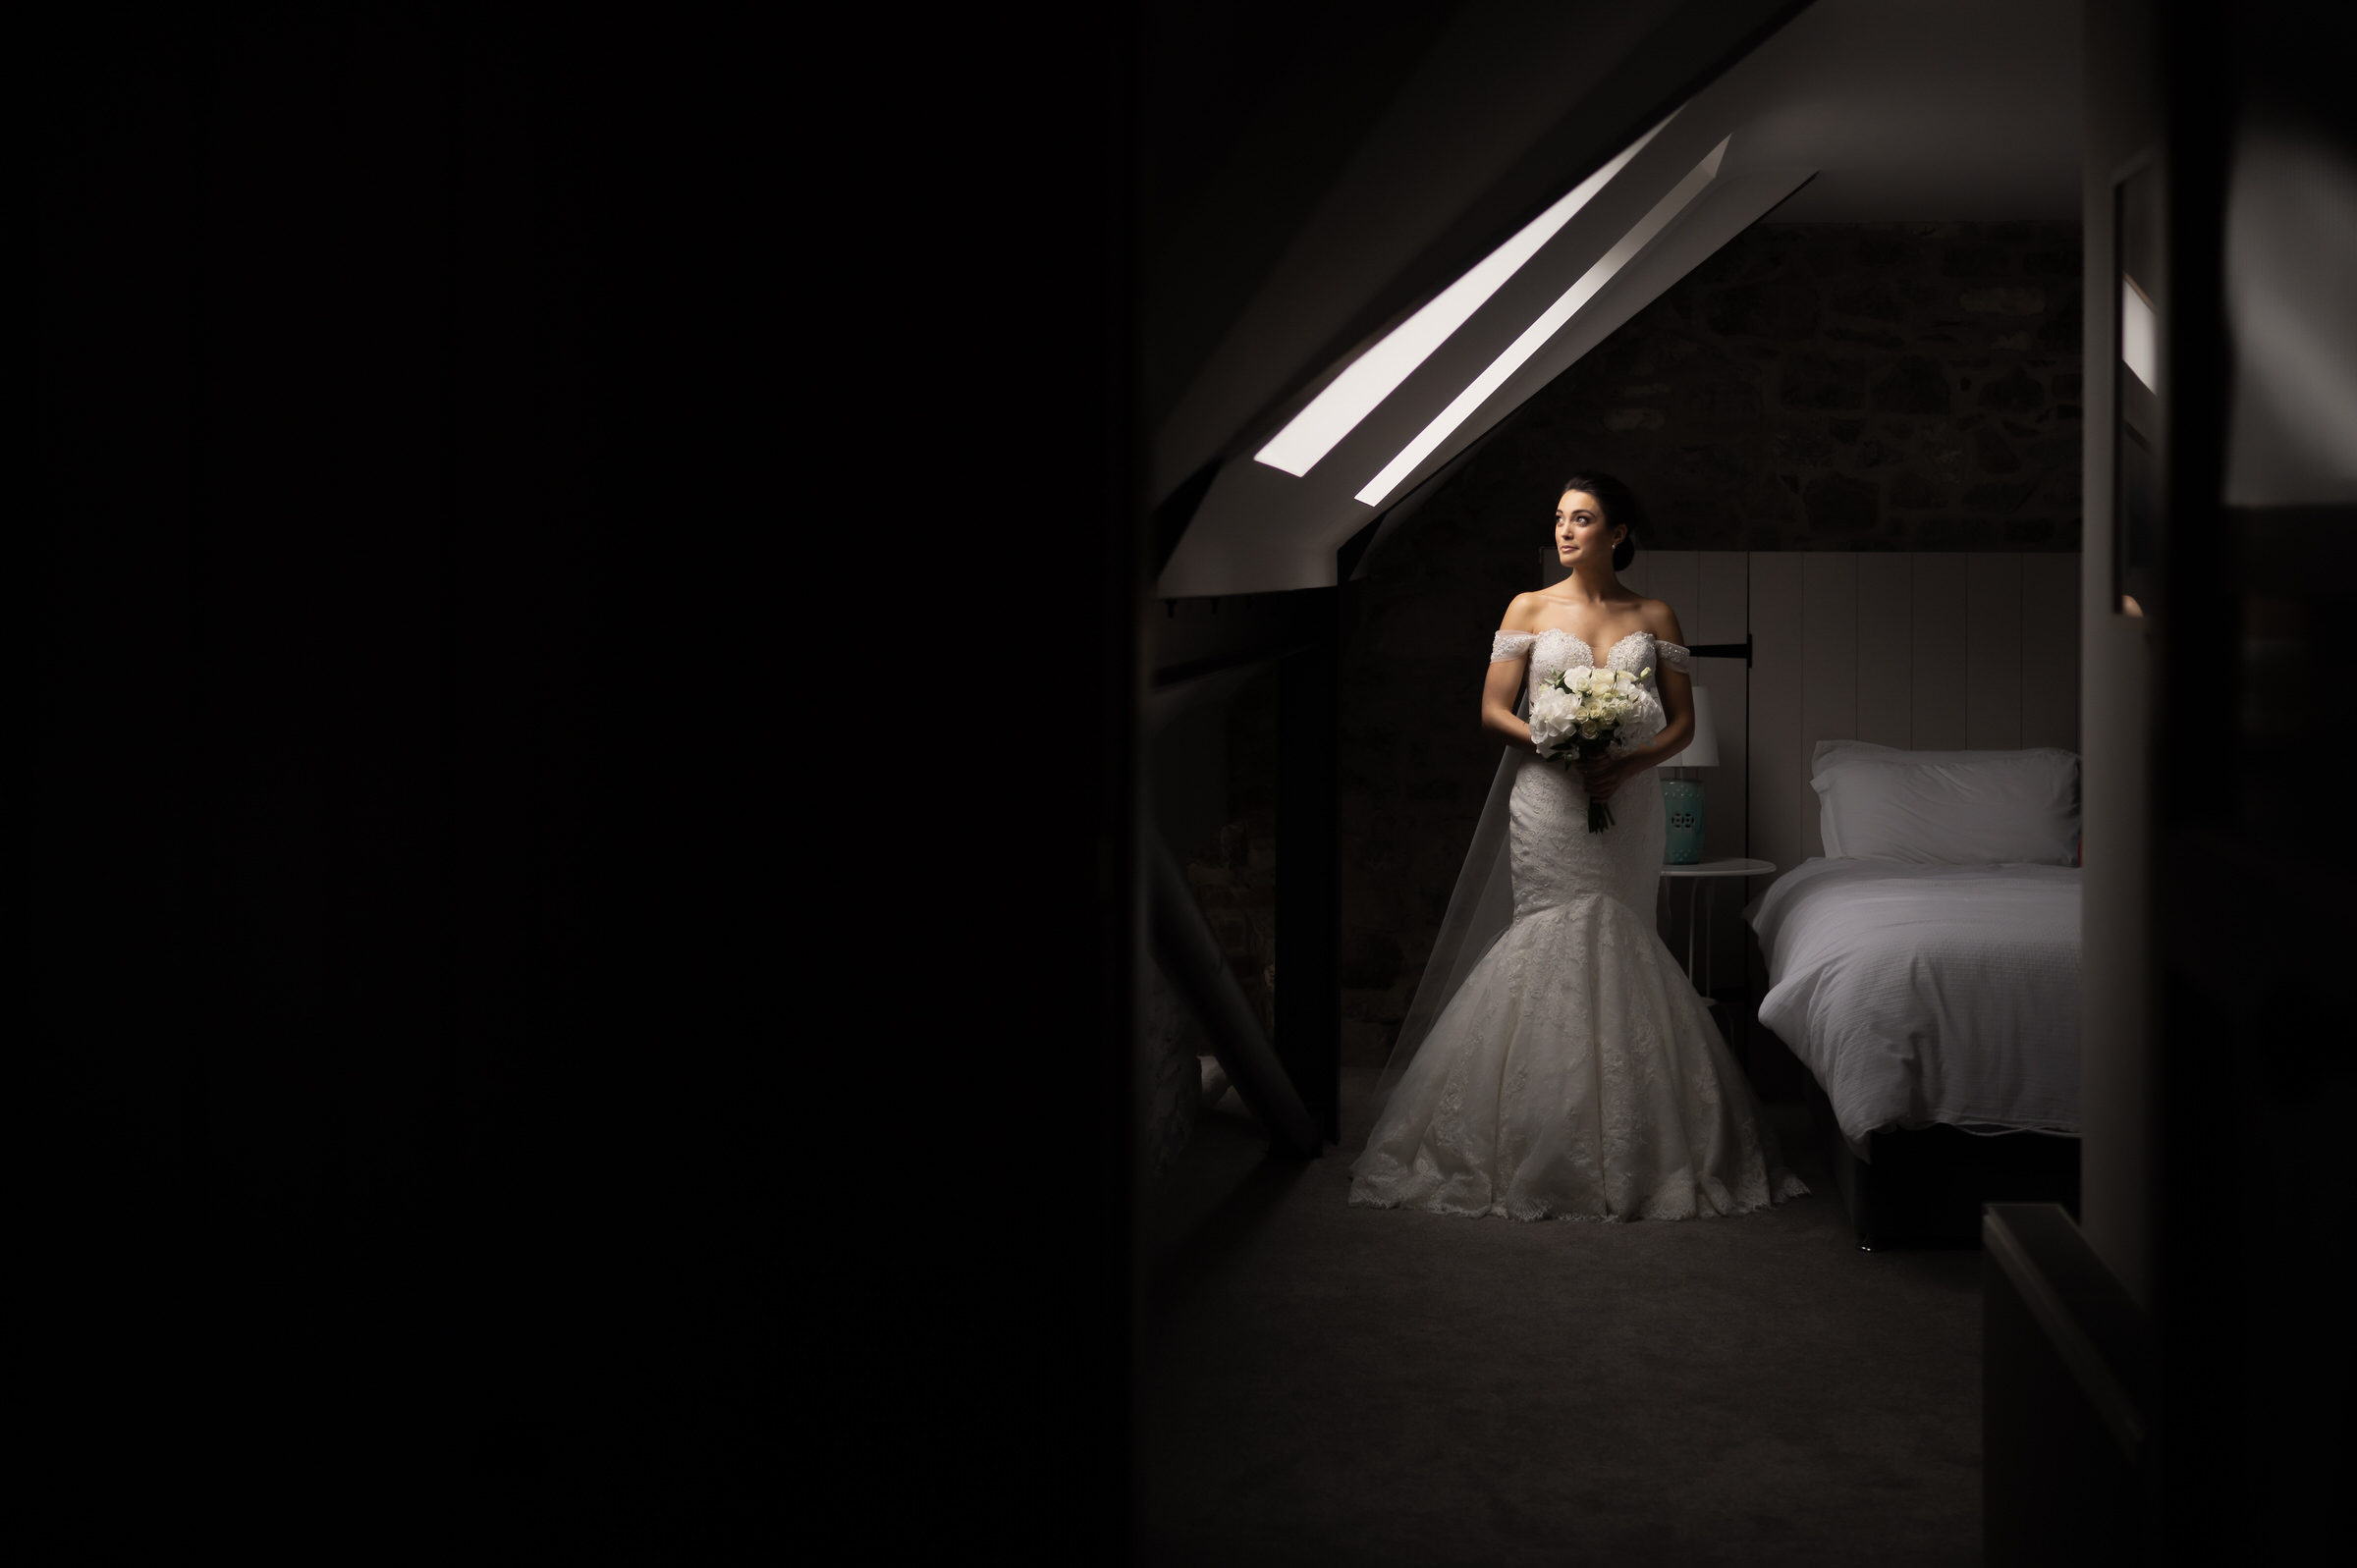 Bride by bed in attic room - photo by John Gillooley